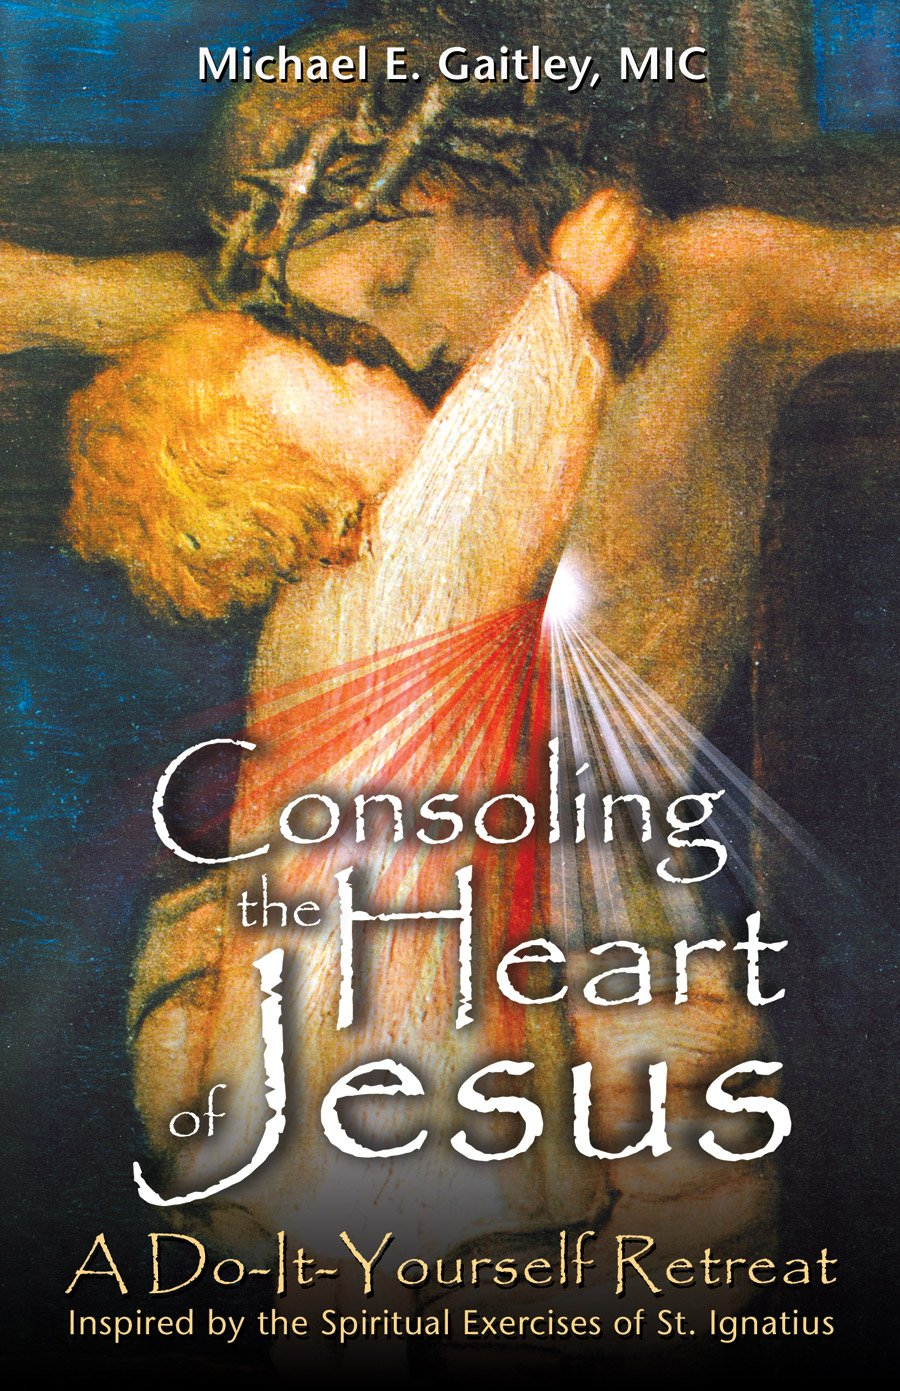 Consoling the heart of jesus a do it yourself retreat inspired by consoling the heart of jesus a do it yourself retreat inspired by the spiritual exercises of st ignatius michael e gaitley 9781596142220 amazon solutioingenieria Gallery